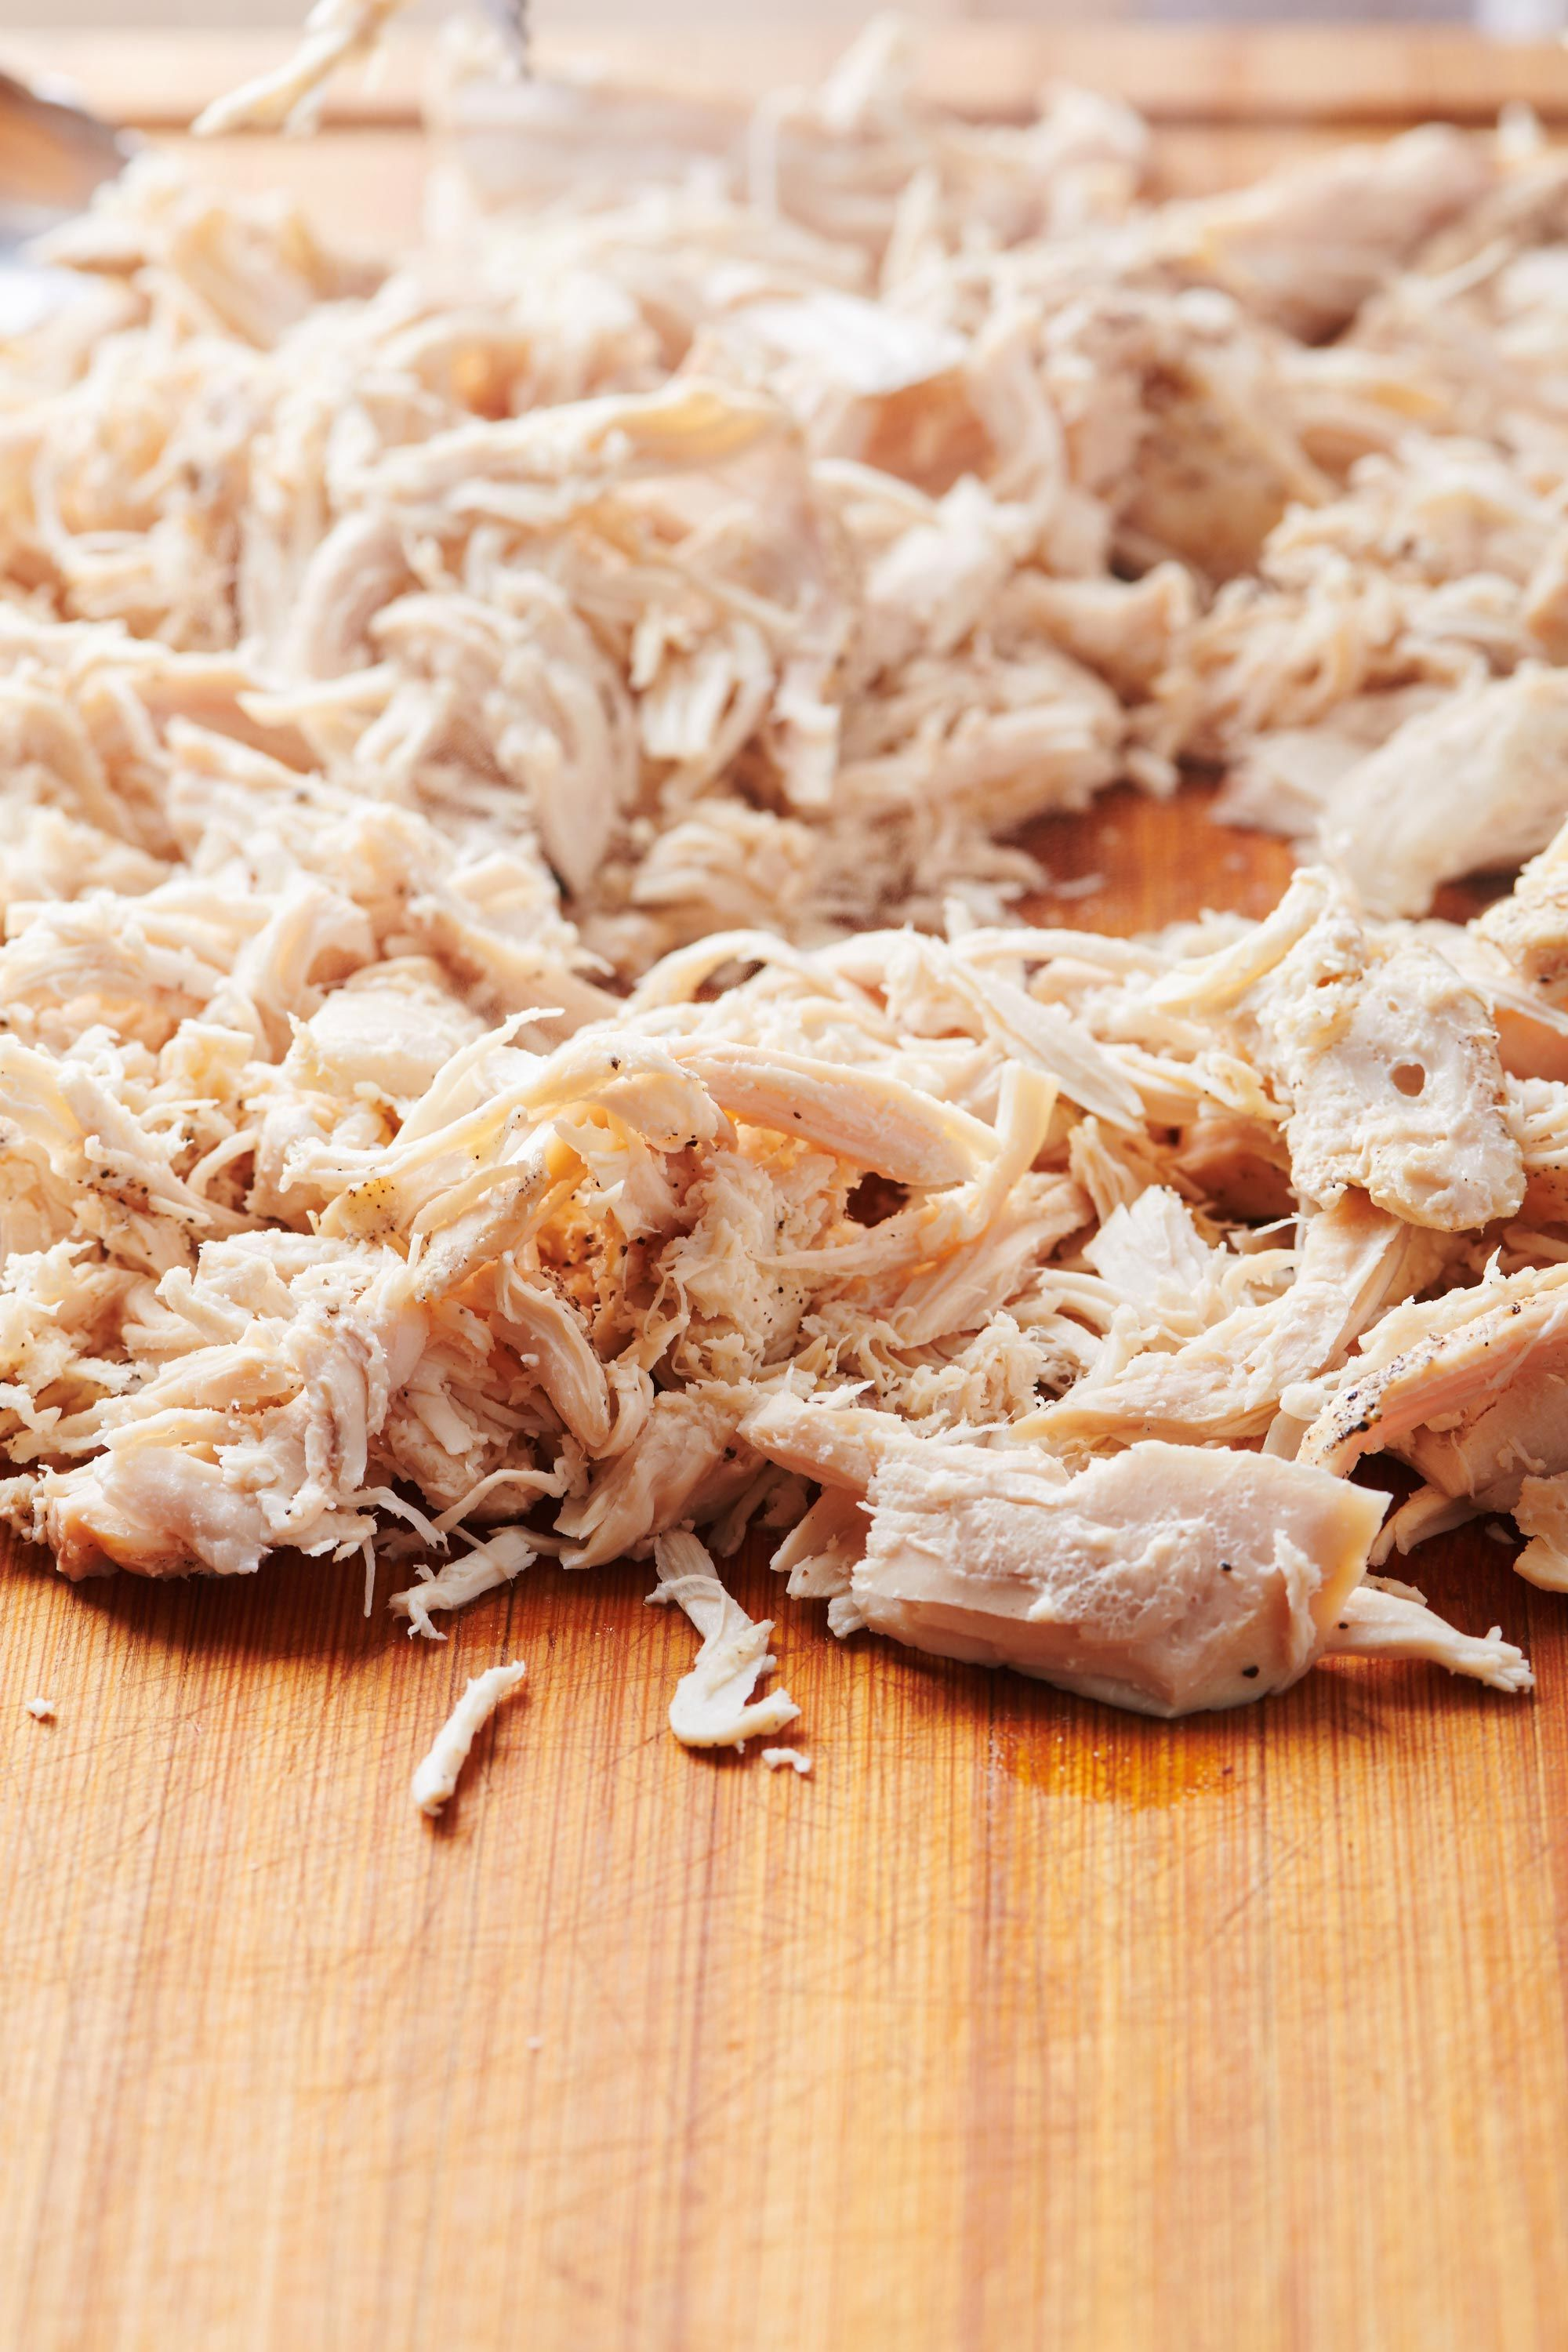 How To Make Shredded Chicken In The Slow Cooker The Mom 100 Recipe Make Shredded Chicken Shredded Chicken Cooking Chicken To Shred